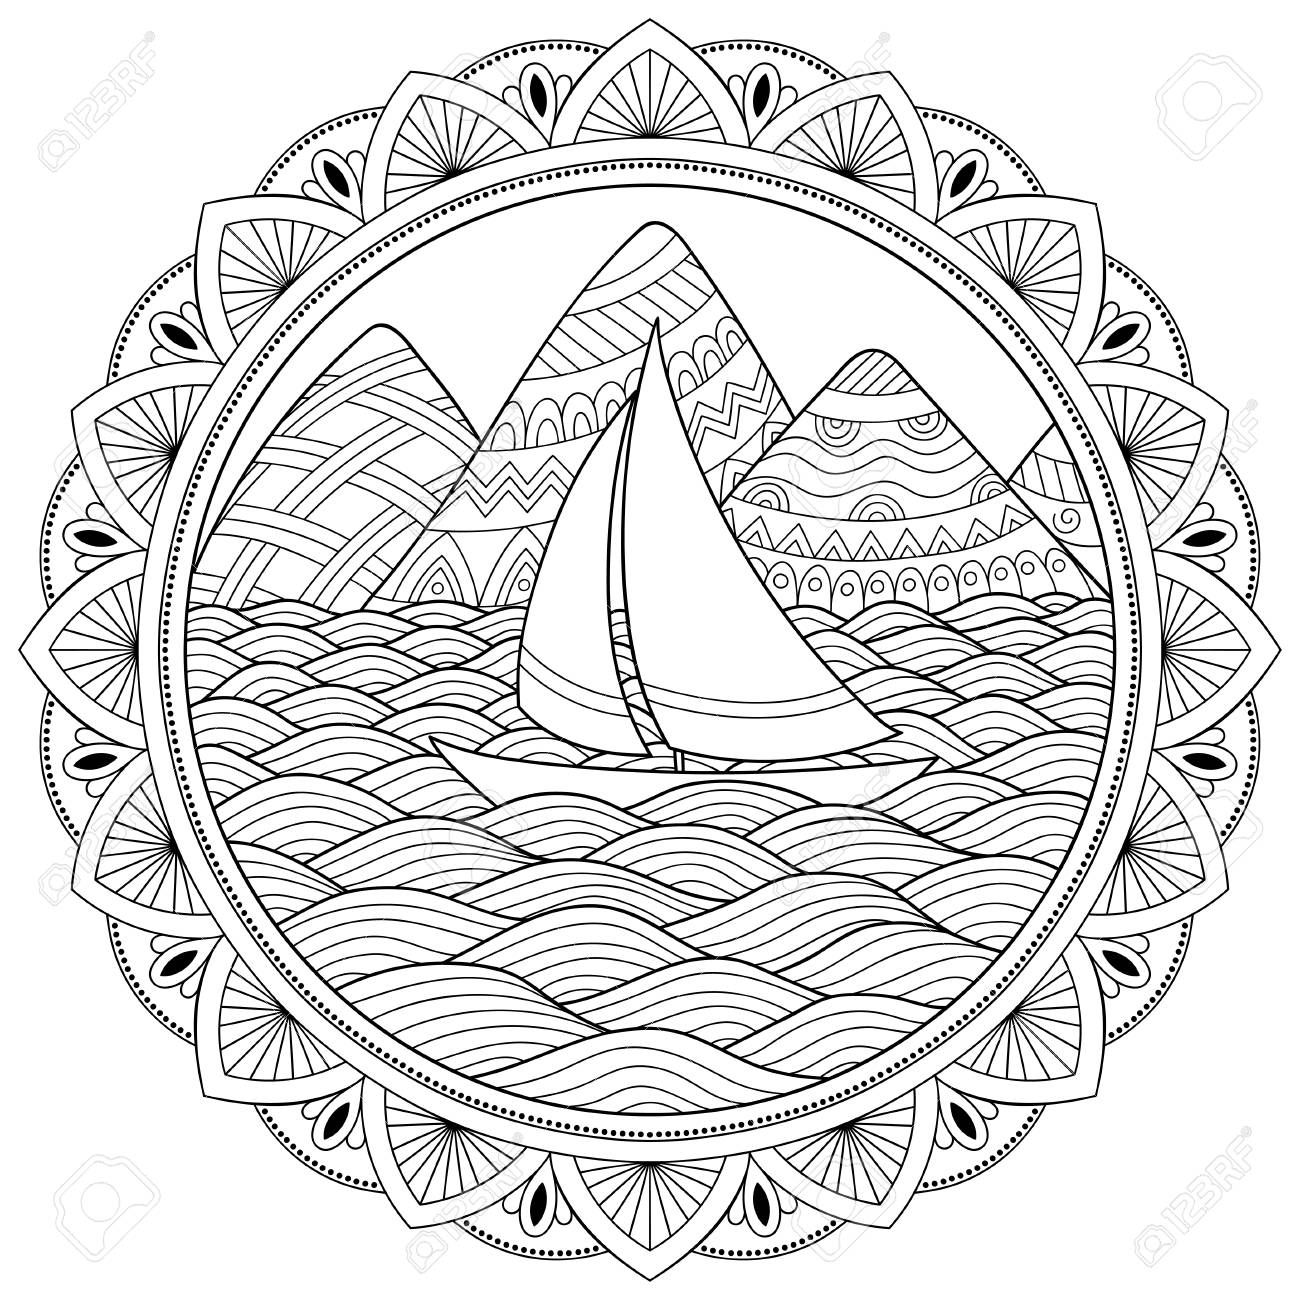 Doodle pattern in black and white. Landscape Pattern for coloring..